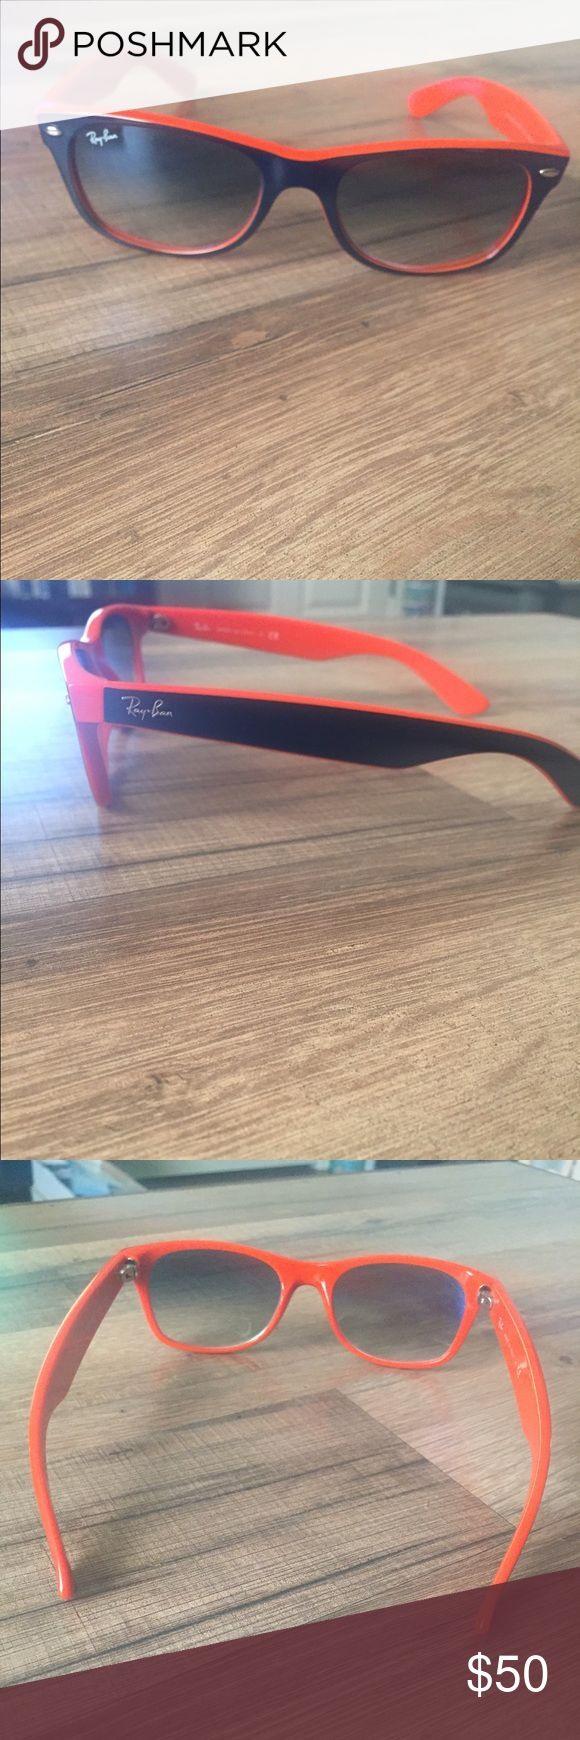 ray ban flash lenses review  1000+ ideas about Ray Ban Wayfarer Price on Pinterest